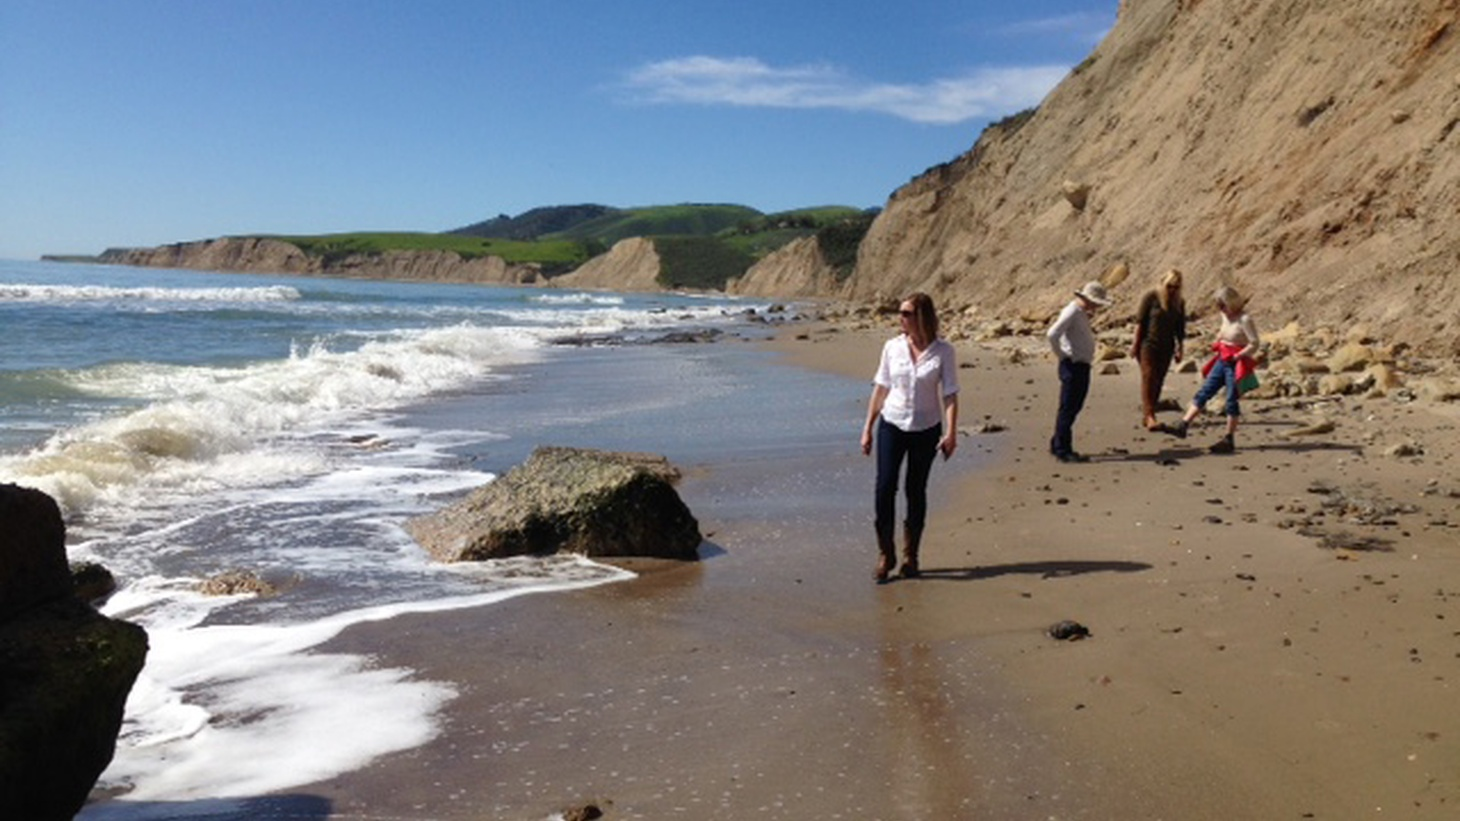 A team of coastal rights activists has banded together to stop a deal from going through that would essentially cut off access for good to Hollister Ranch, a pristine stretch of coastline in Santa Barbara.